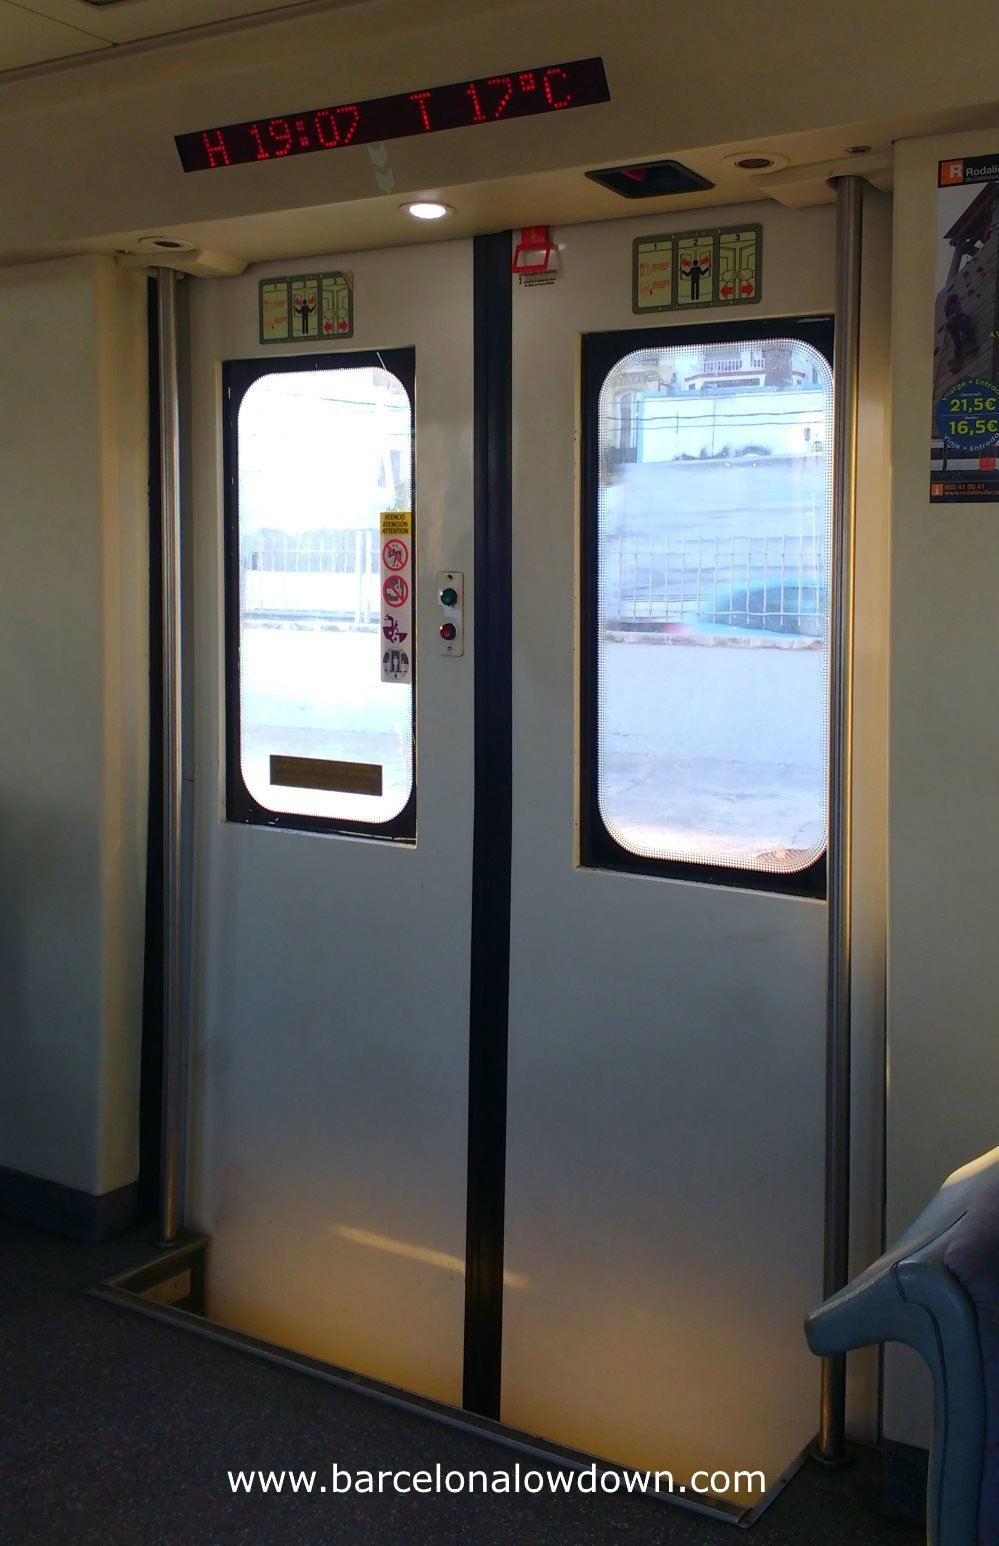 LED display above the doors of an older type Spanish commuter train